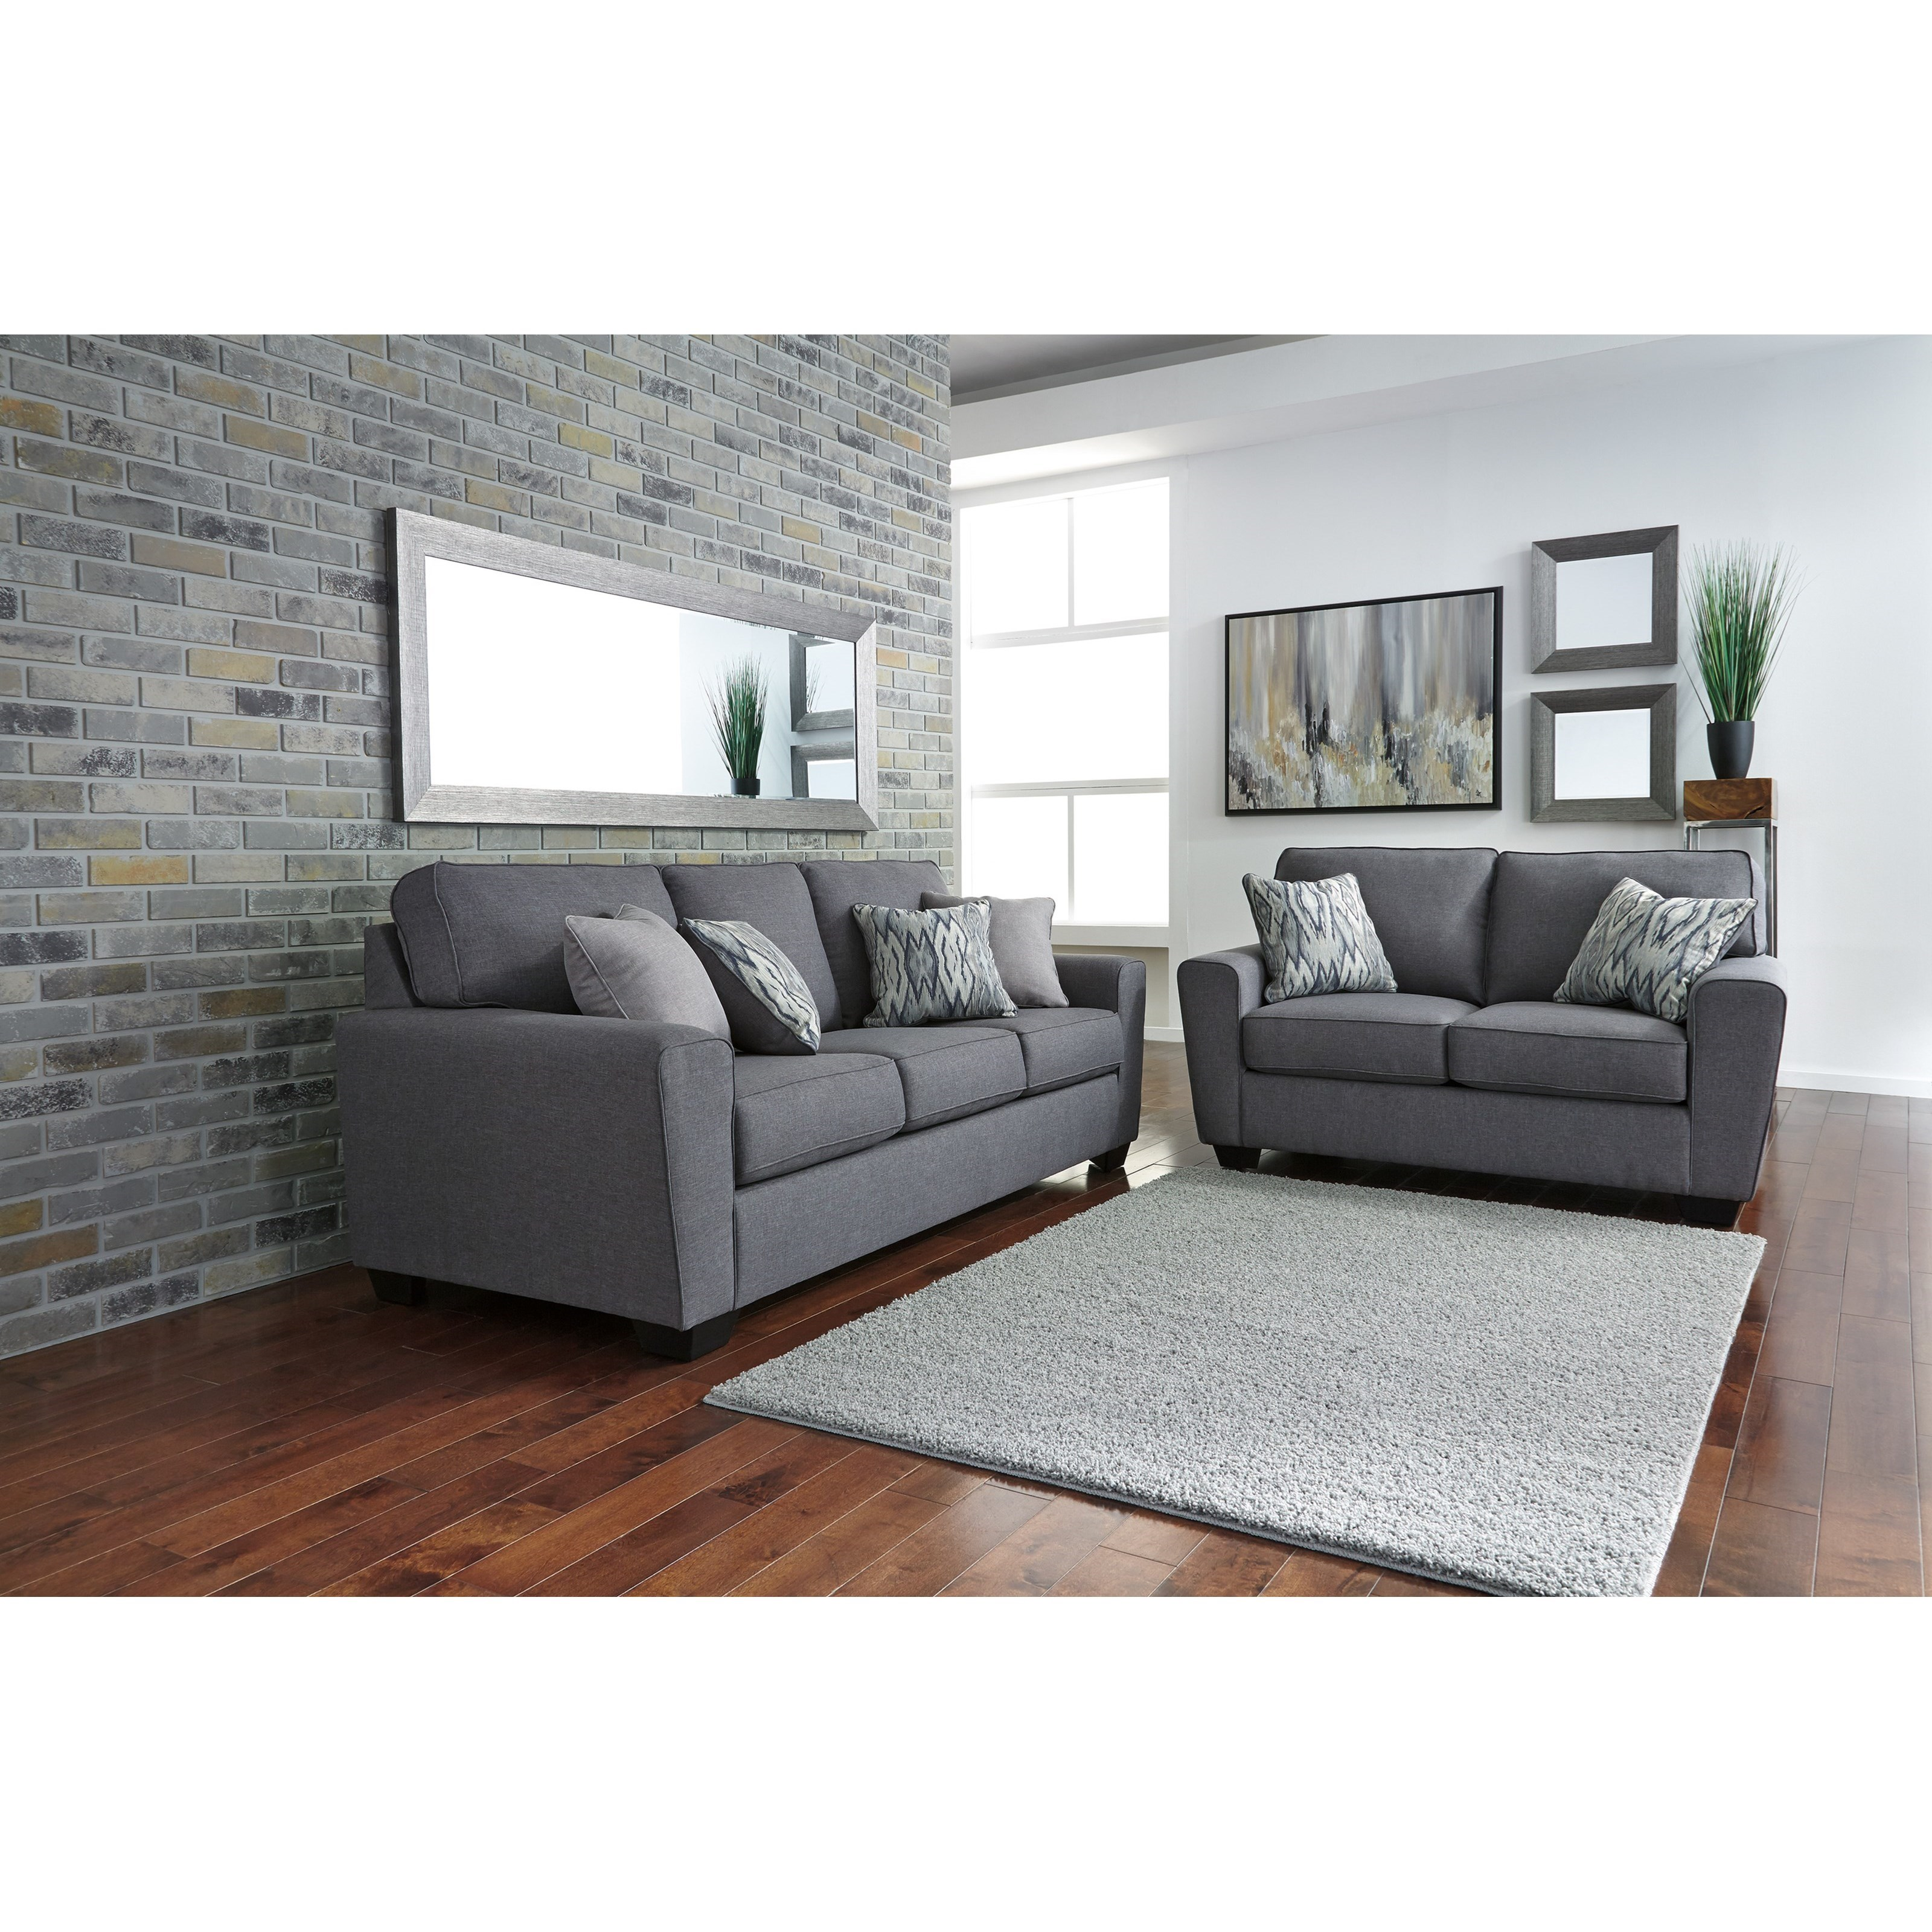 Ashley furniture calion stationary living room group for Living room furniture groups